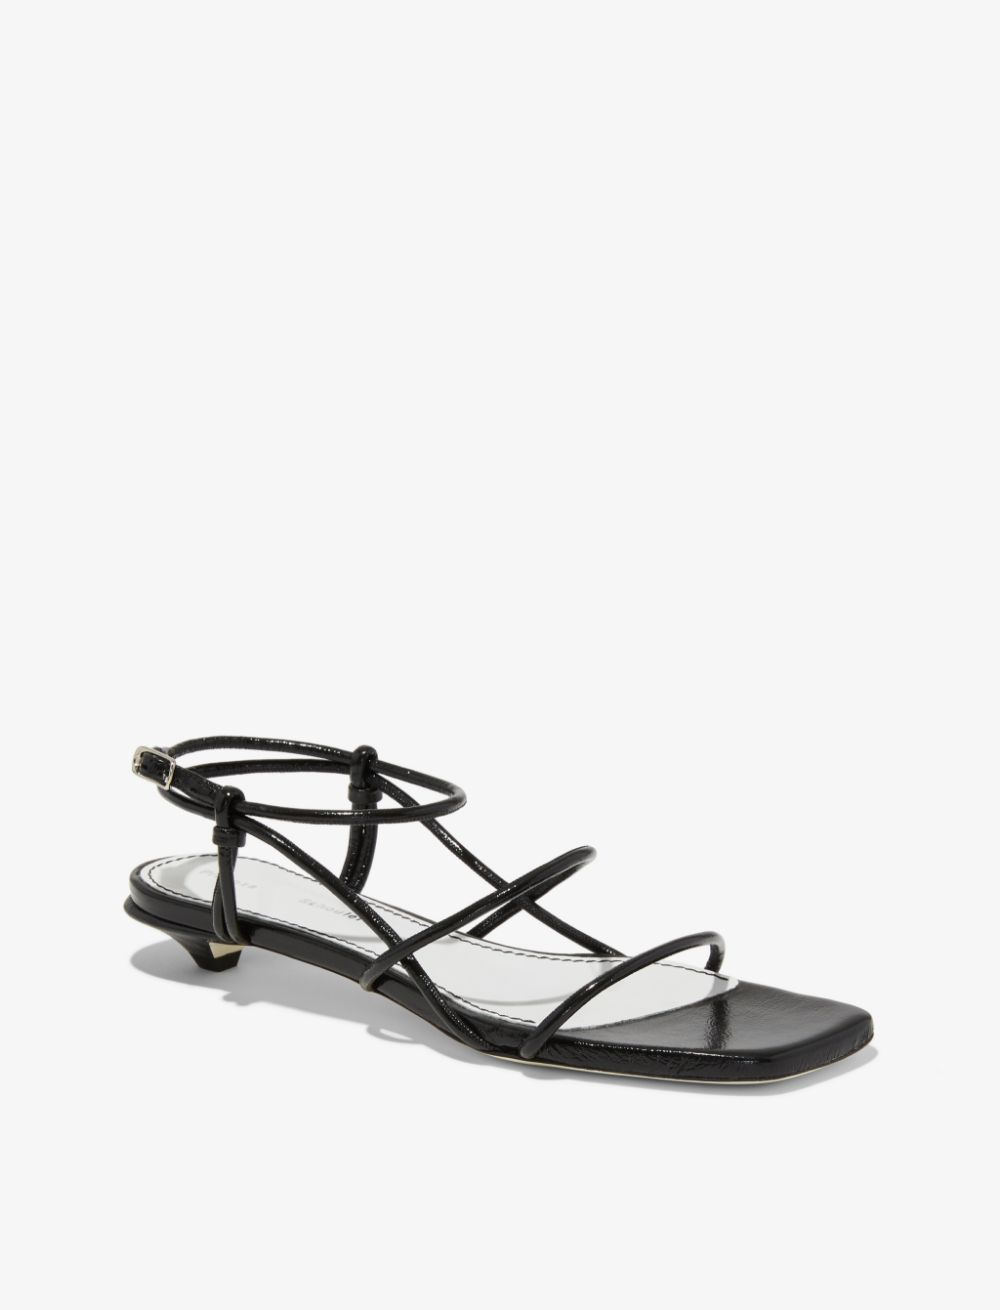 999 Black Strappy Low Kitten Heel Sandals From Proenza Schouler In 2020 Kitten Heel Sandals Black Sandals Heels Kitten Heels